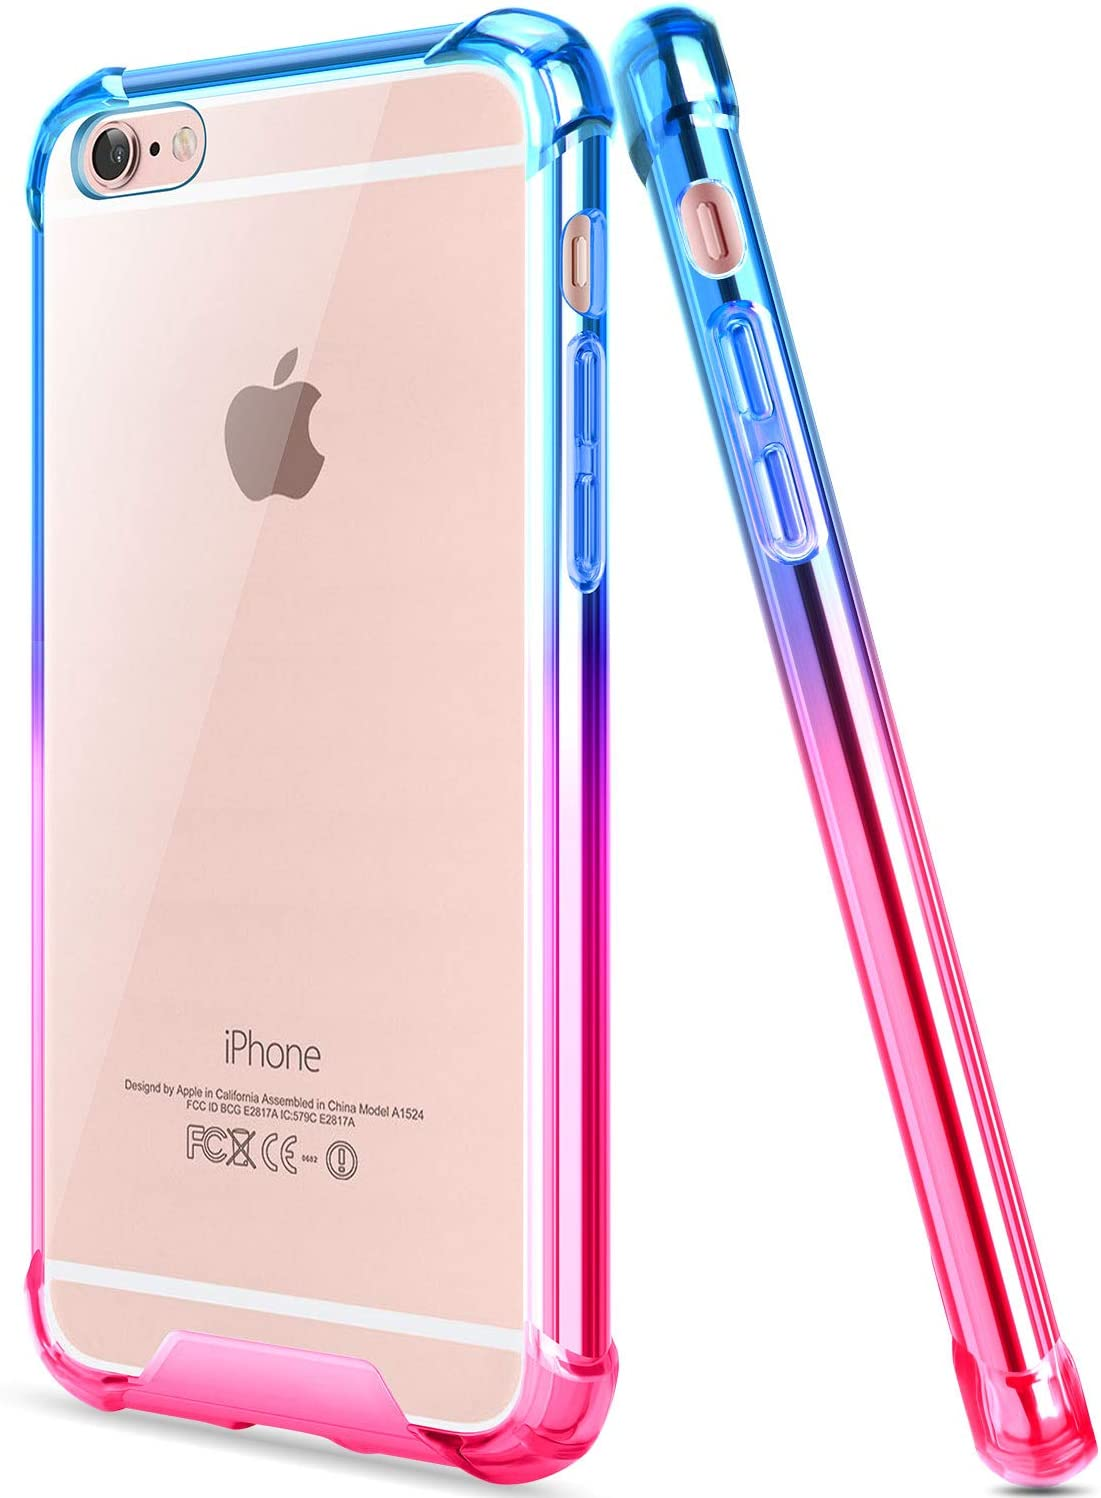 Salawat for iPhone 6 Case, Clear iPhone 6s Case Cute Anti Scratch Slim Phone Case Cover Reinforced TPU Bumper Shock Absorption Protective Case for iPhone 6/6s 4.7inch (Blue Pink)